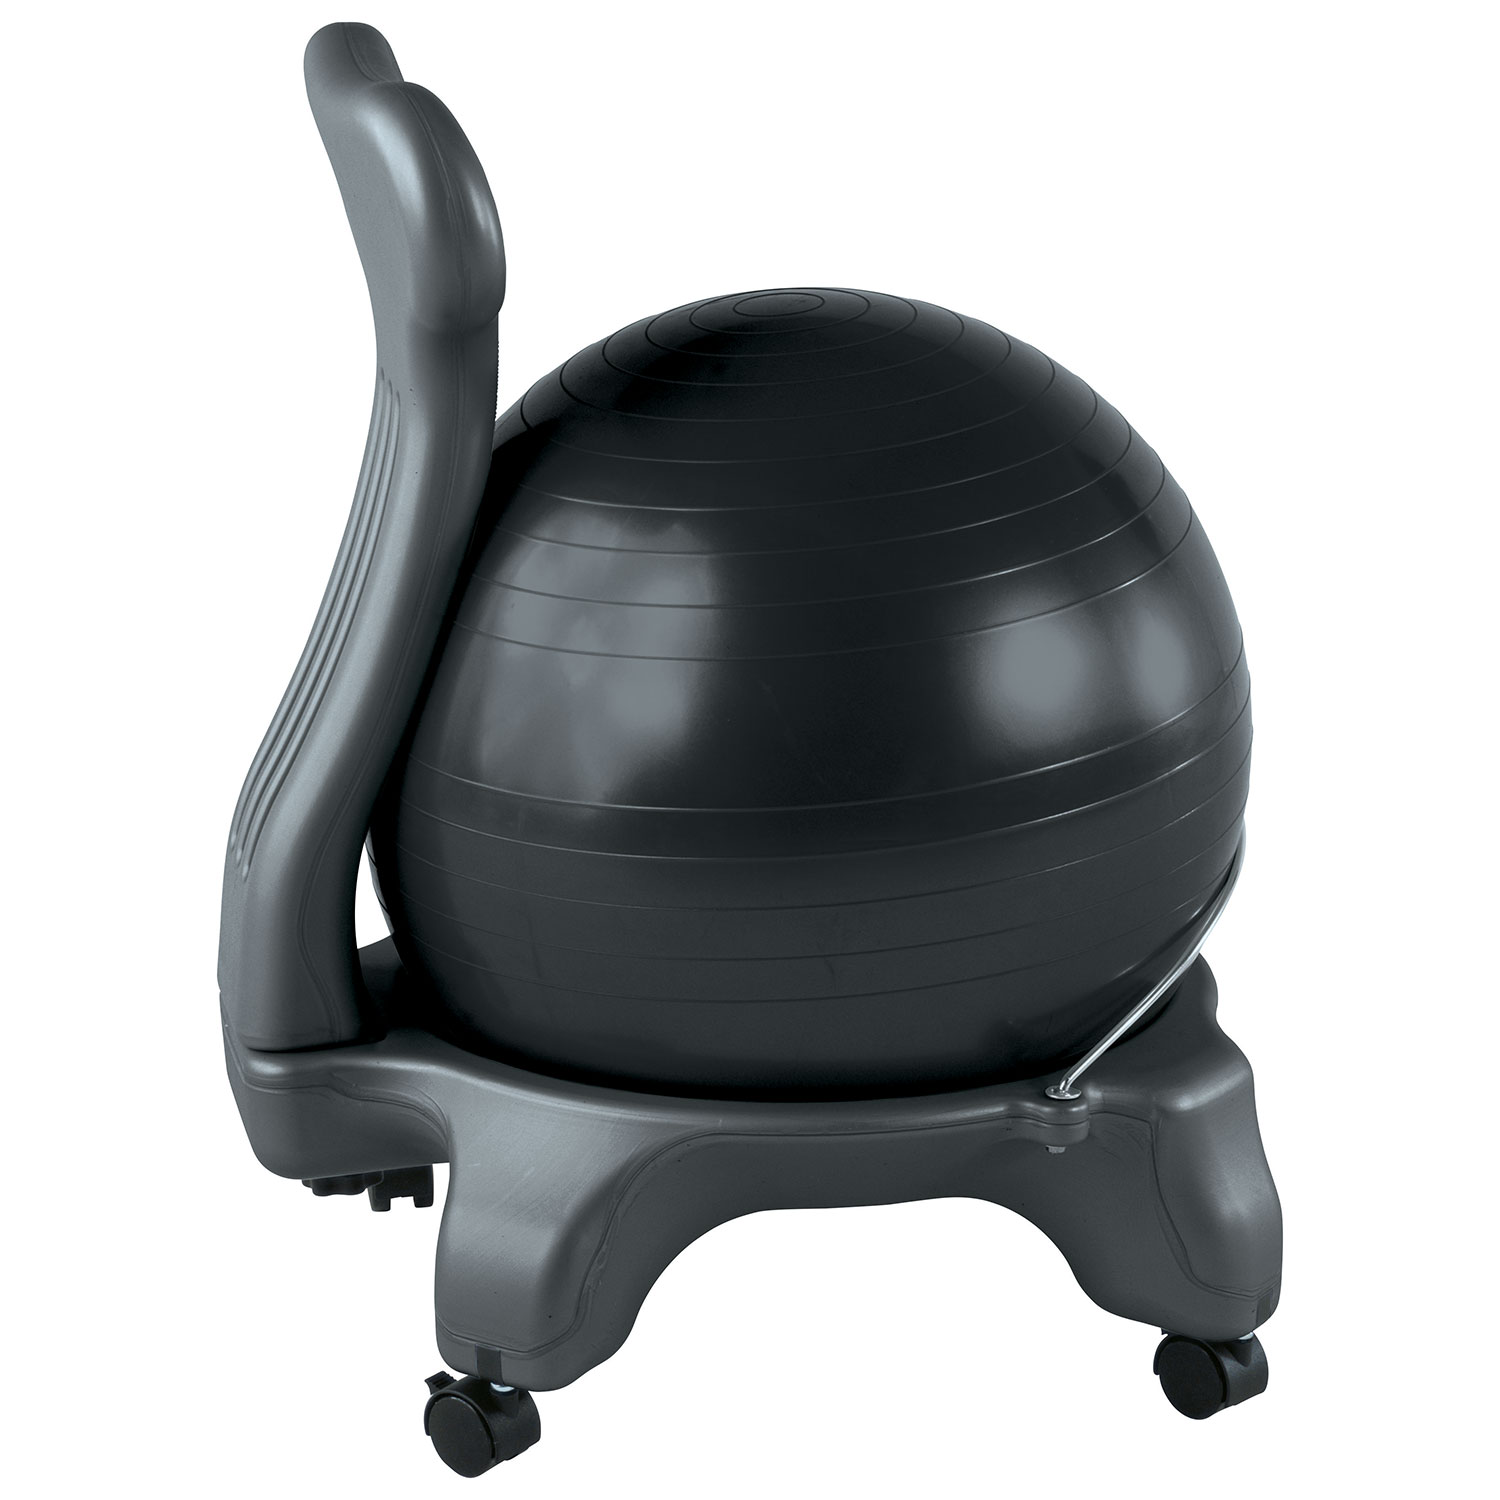 gaiam balance ball chair with dvd (zkockt6002cf) - charcoal